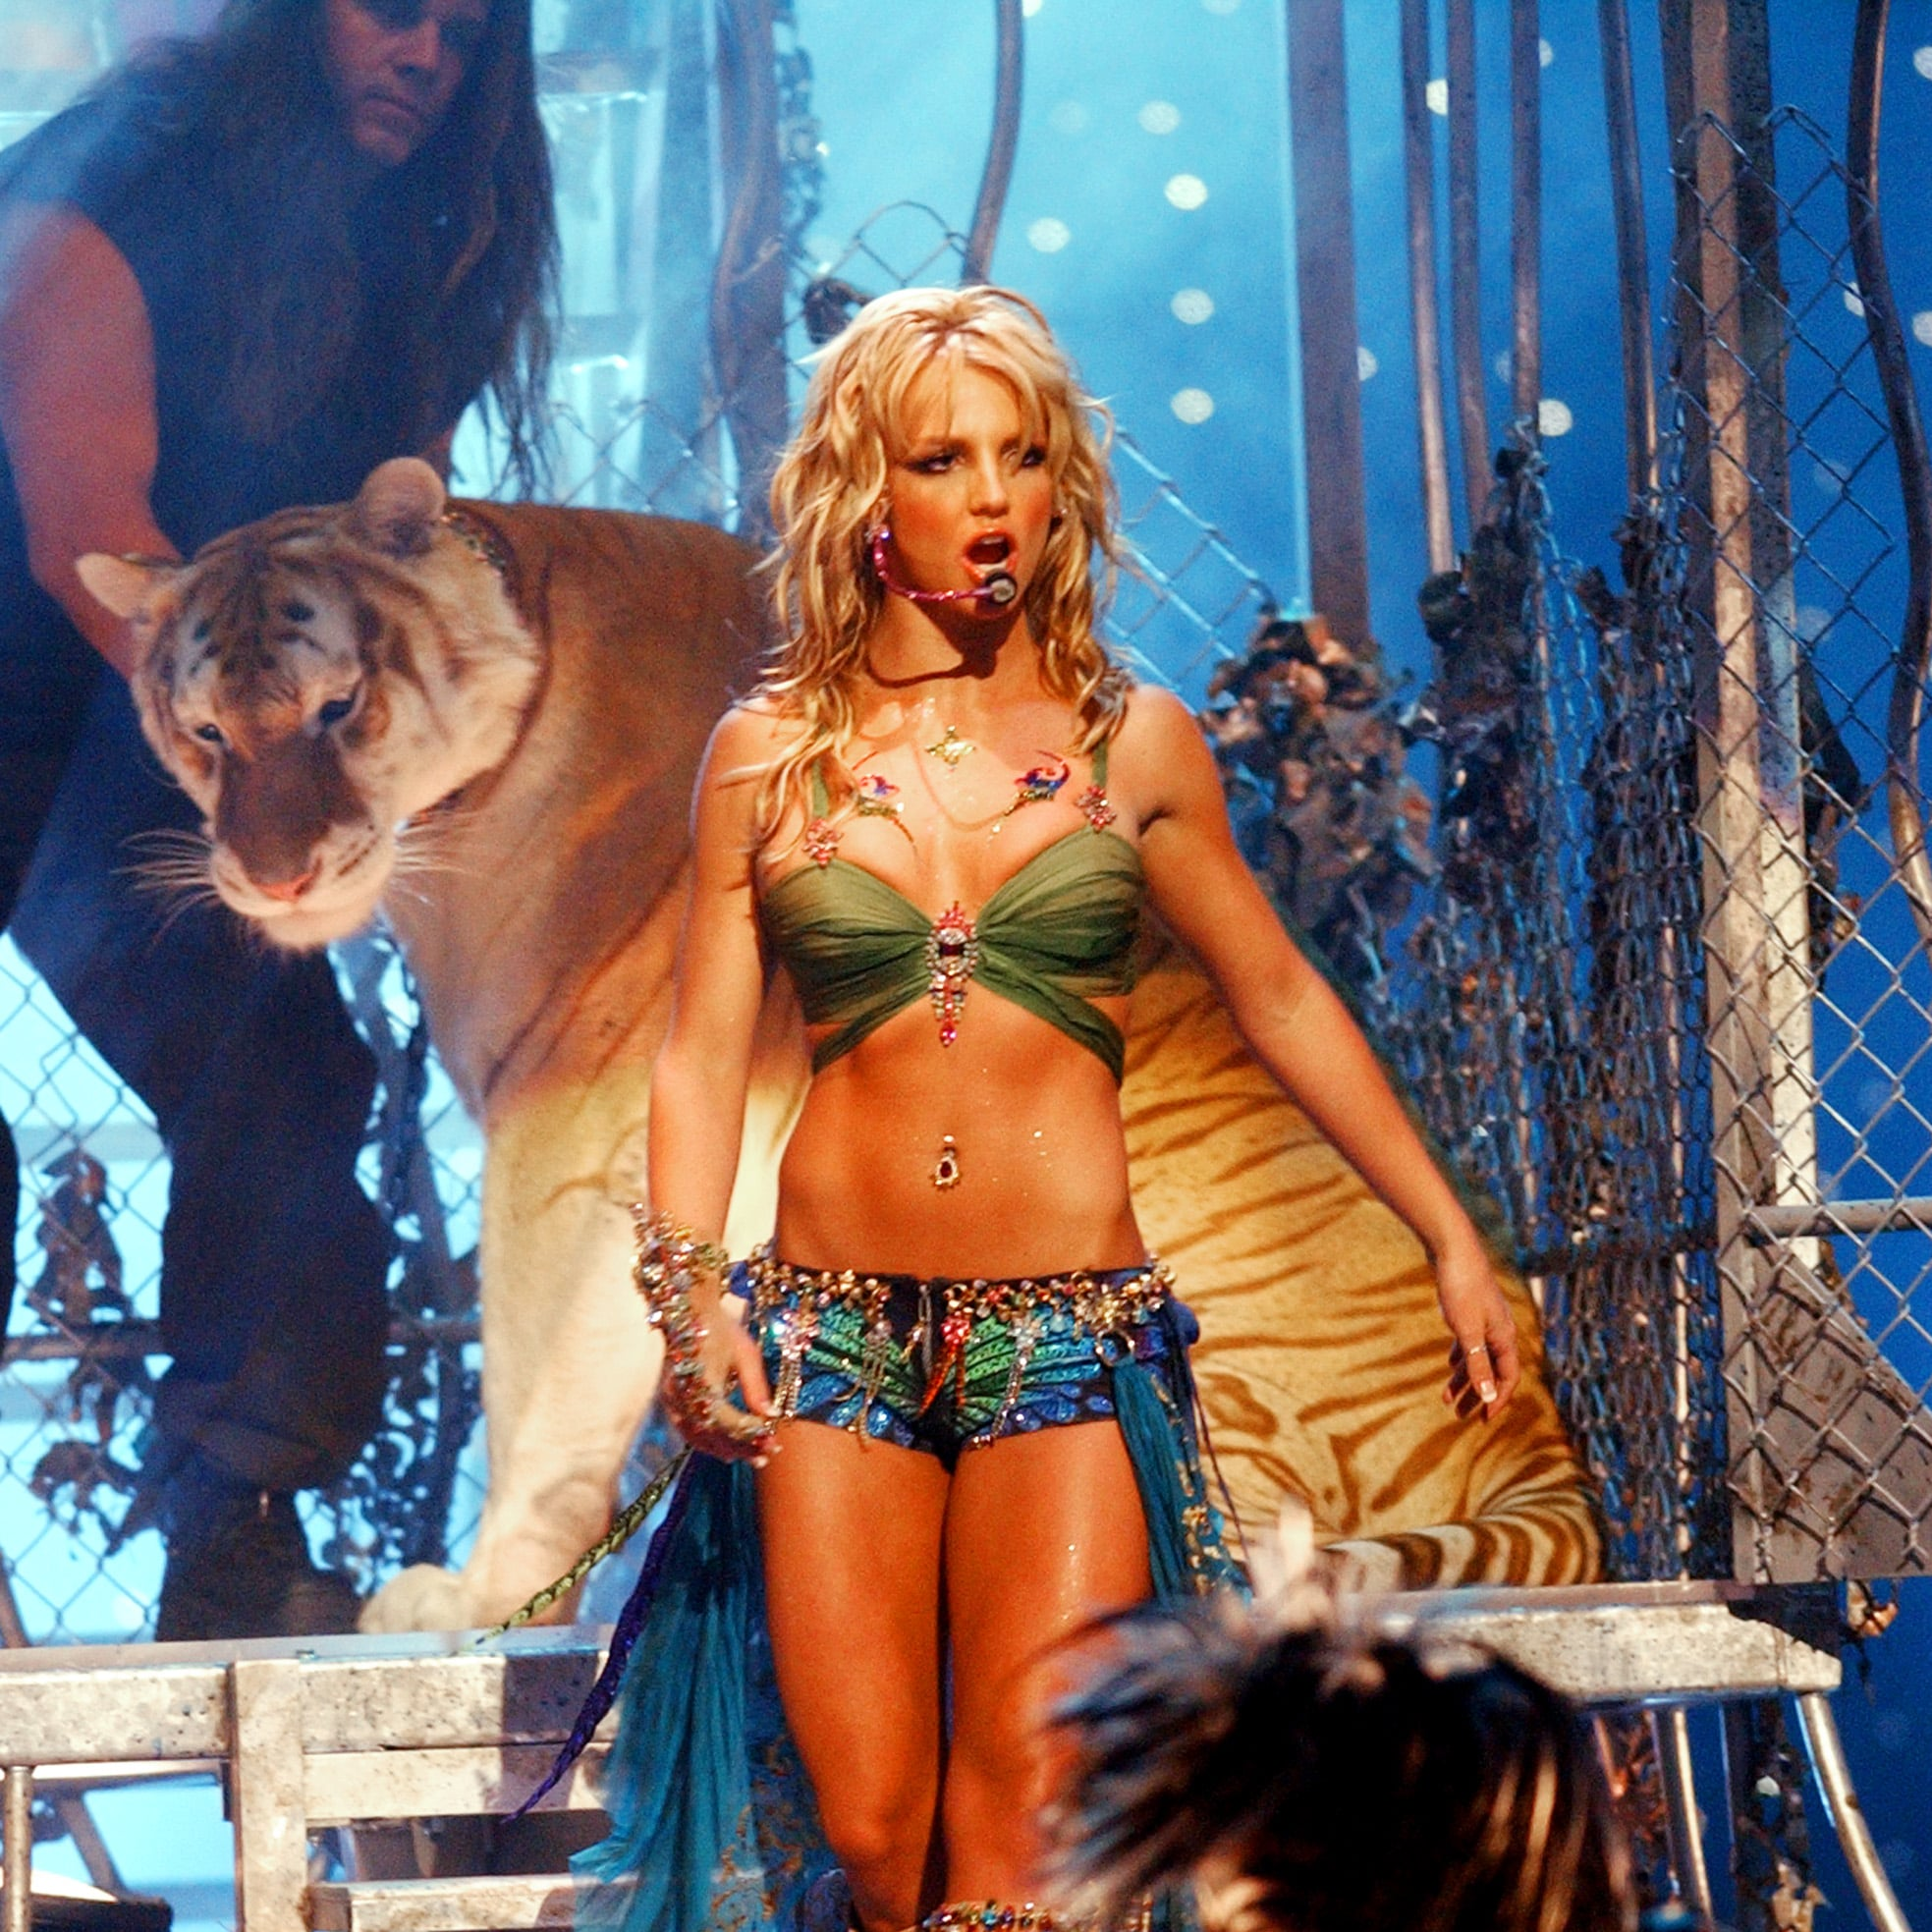 doc-antle-with-tiger-in-britney-spears-2